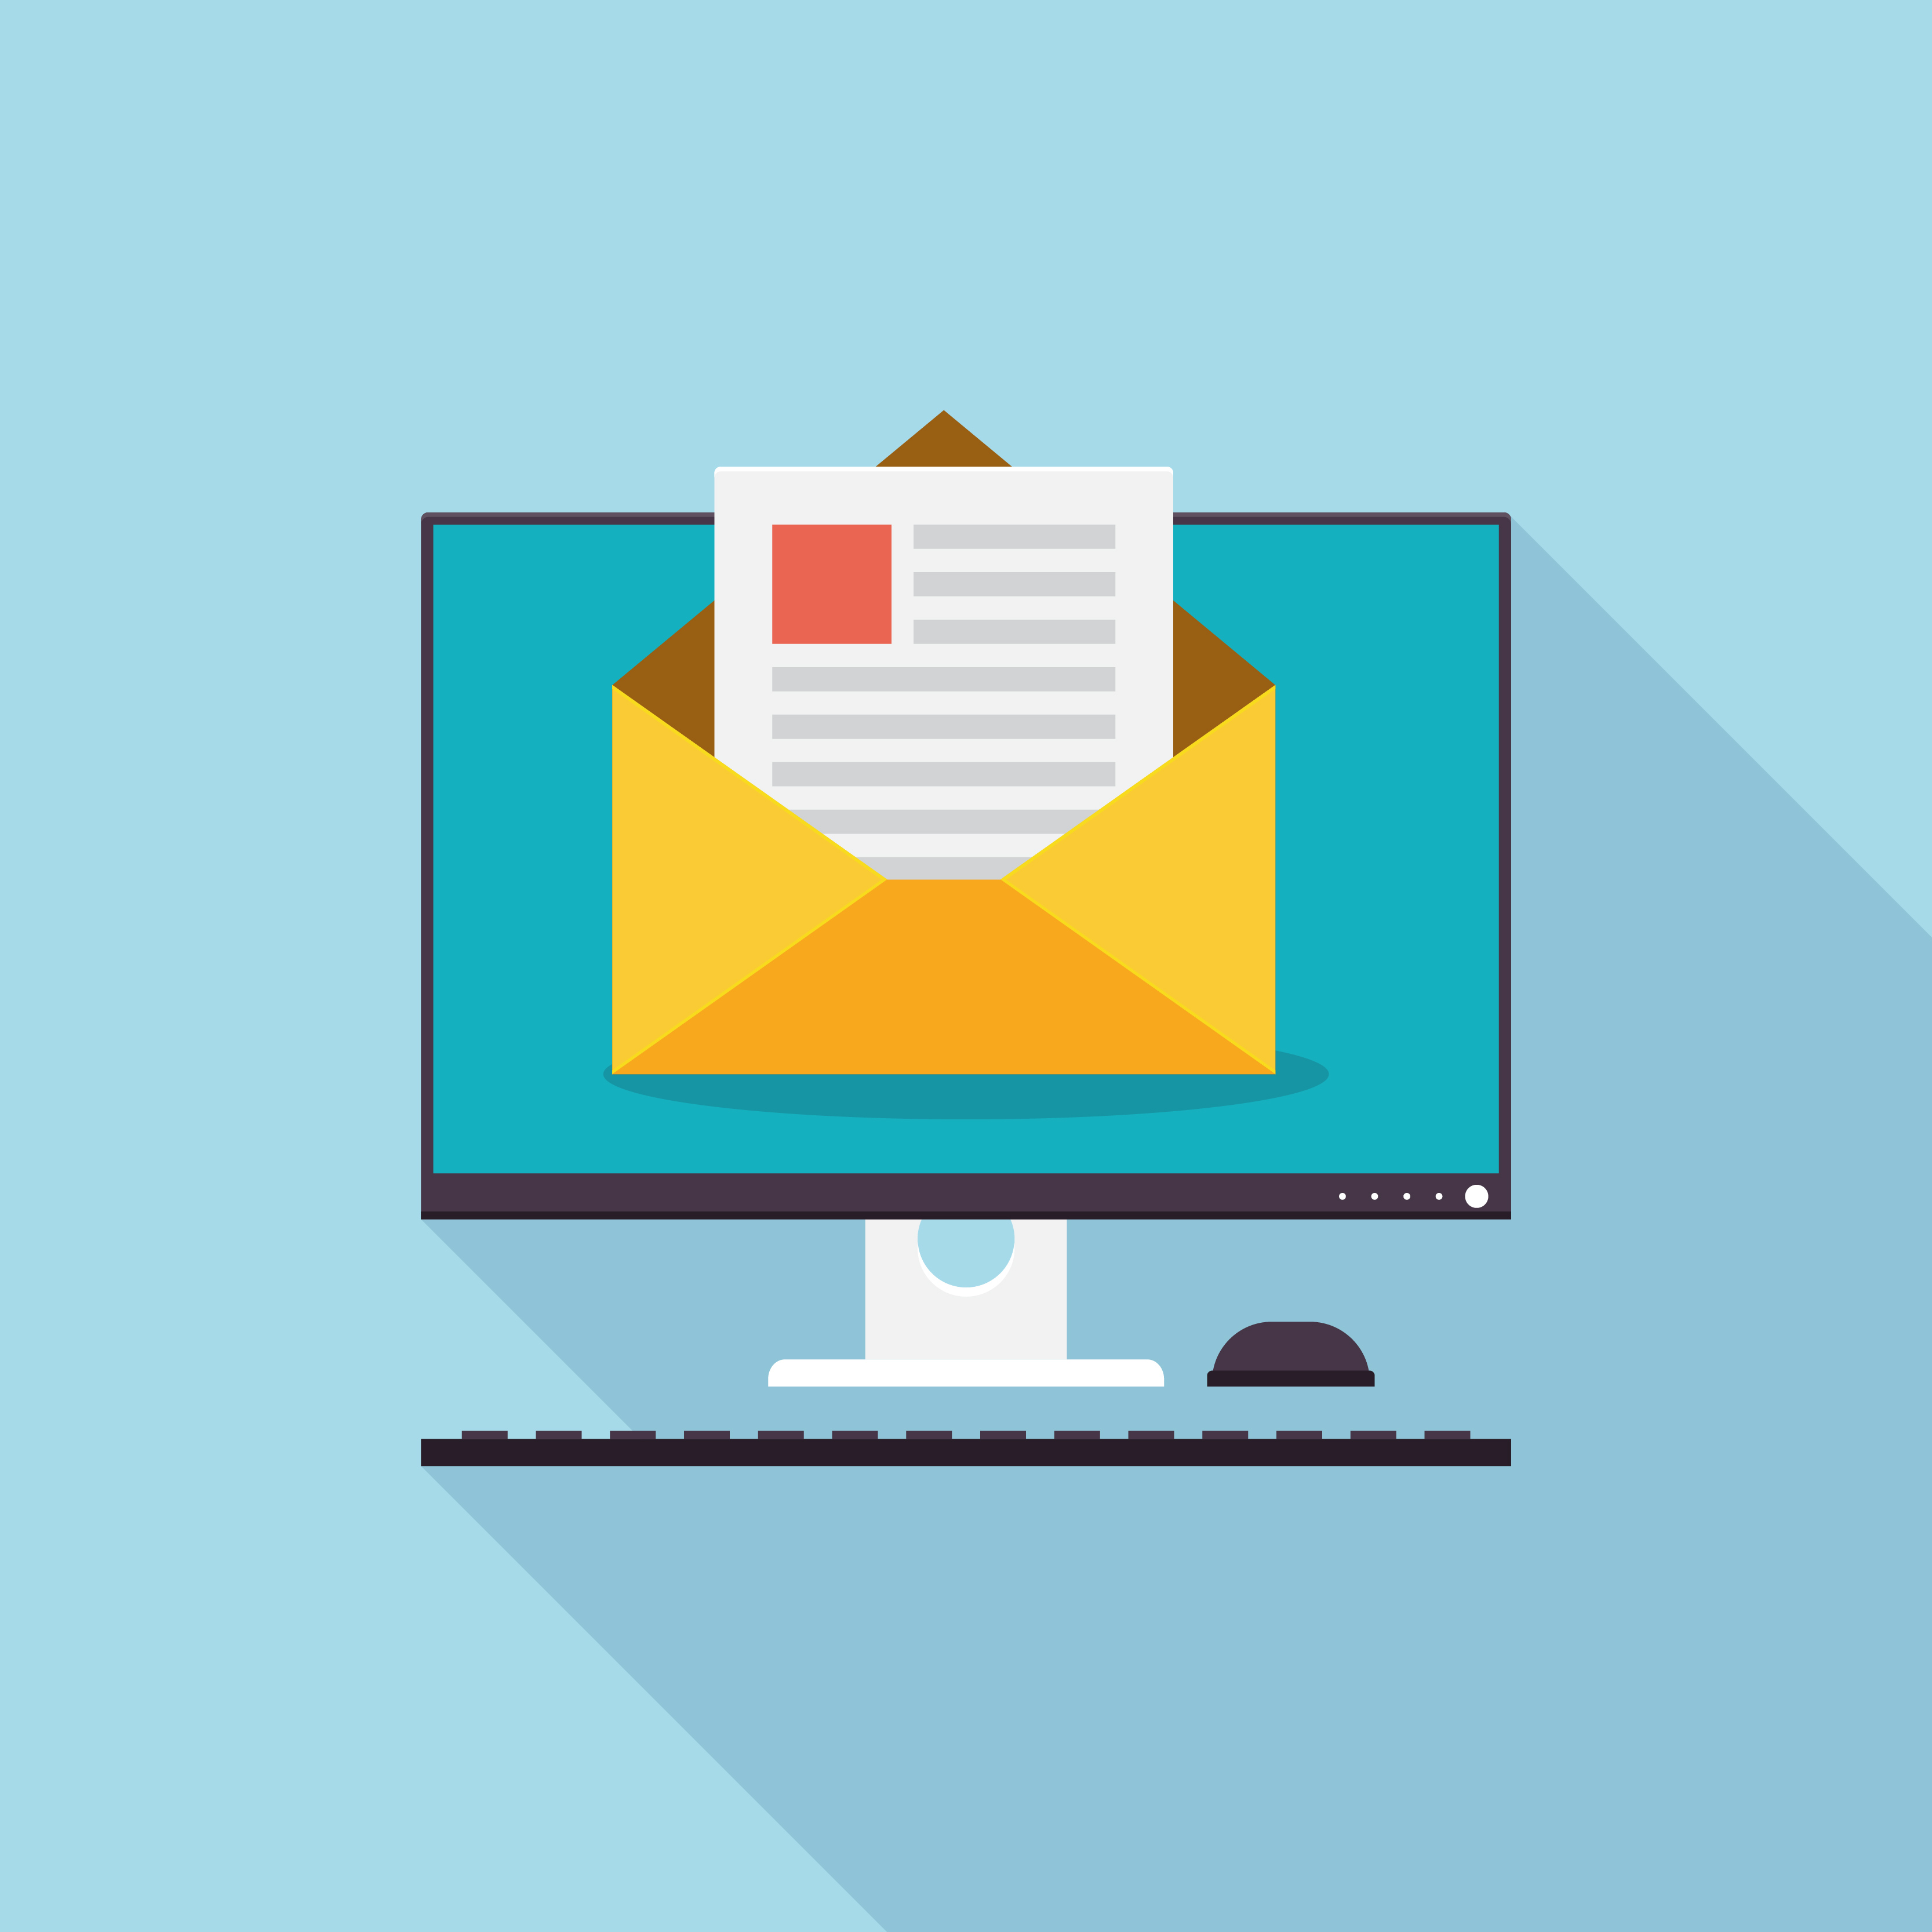 Como Utilizar o E-mail Marketing Para Aumentar Suas Vendas?